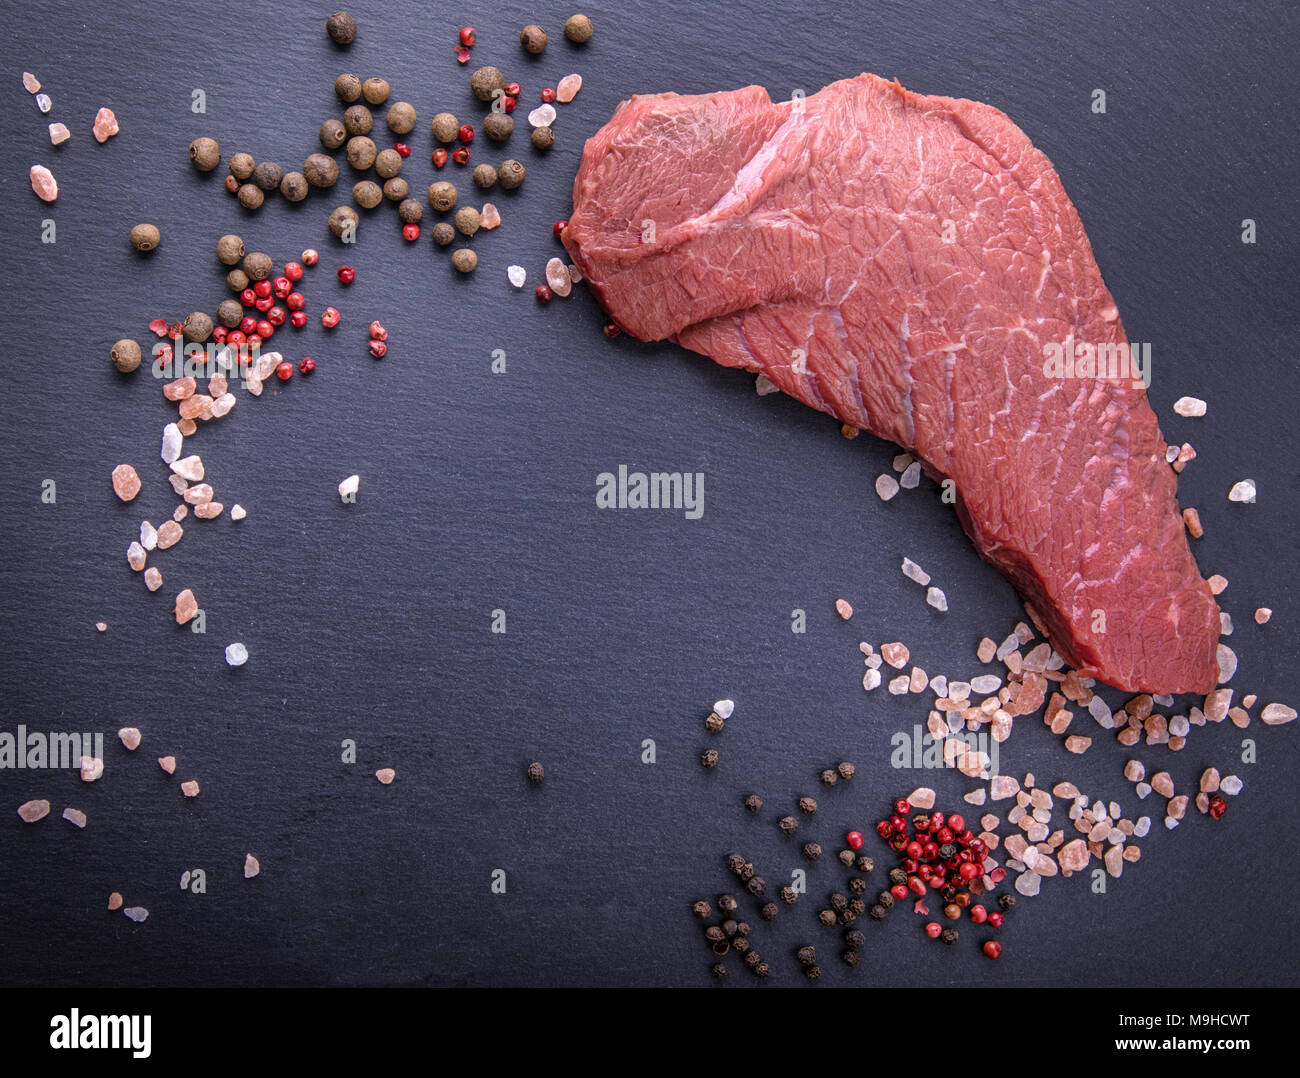 A background with a raw piece of beef and vegetables, a